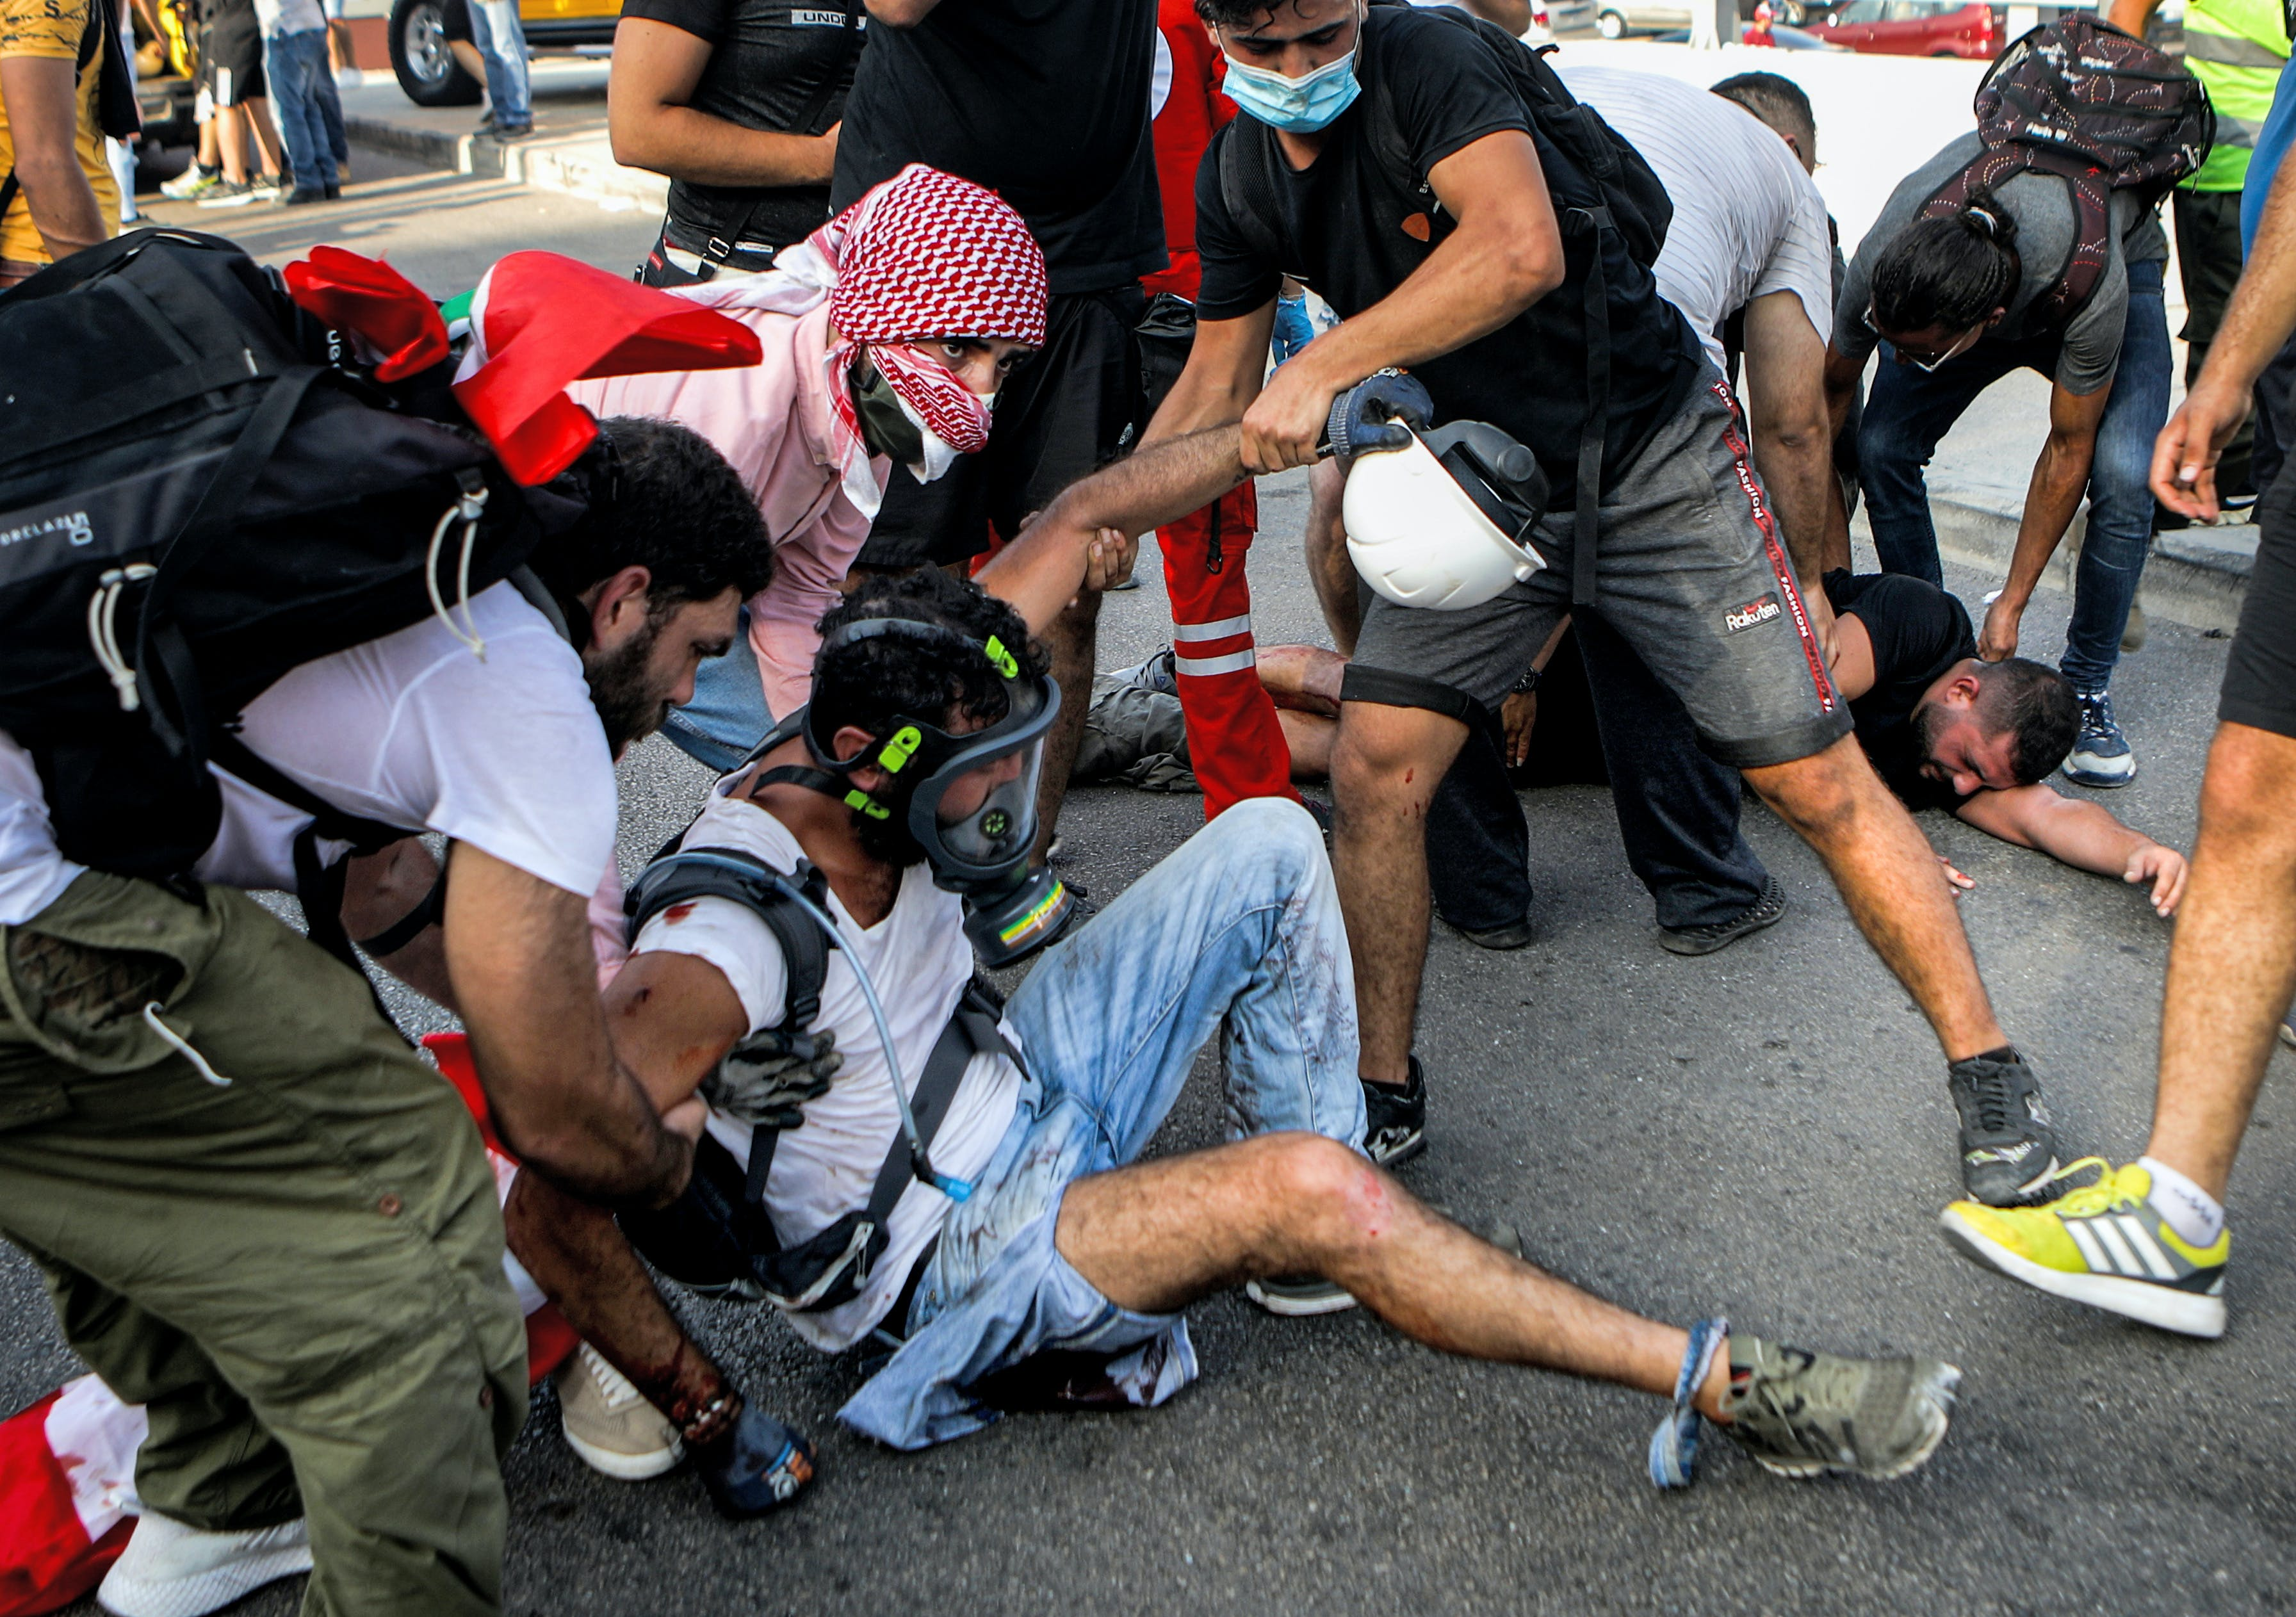 Lebanese protesters help a wounded demonstrator during clashes in downtown Beirut on August 8, 2020, following a demonstration against a political leadership they blame for a monster explosion that killed more than 150 people and disfigured the capital Beirut.